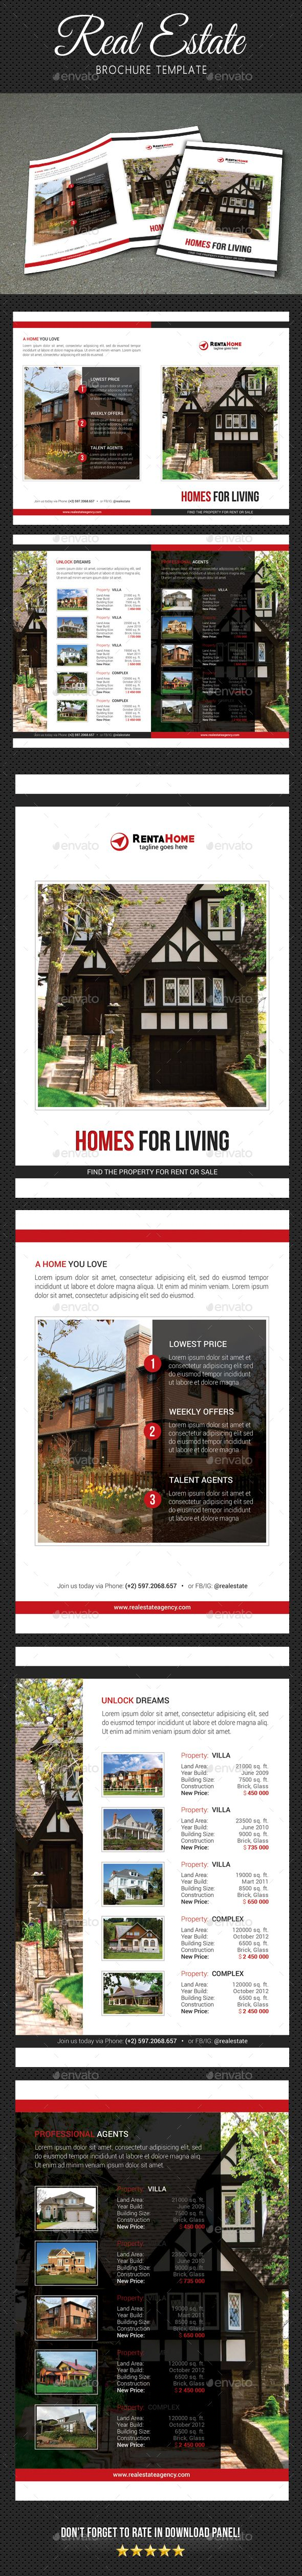 Real Estate Brochure  Brochures Print Templates And Brochure